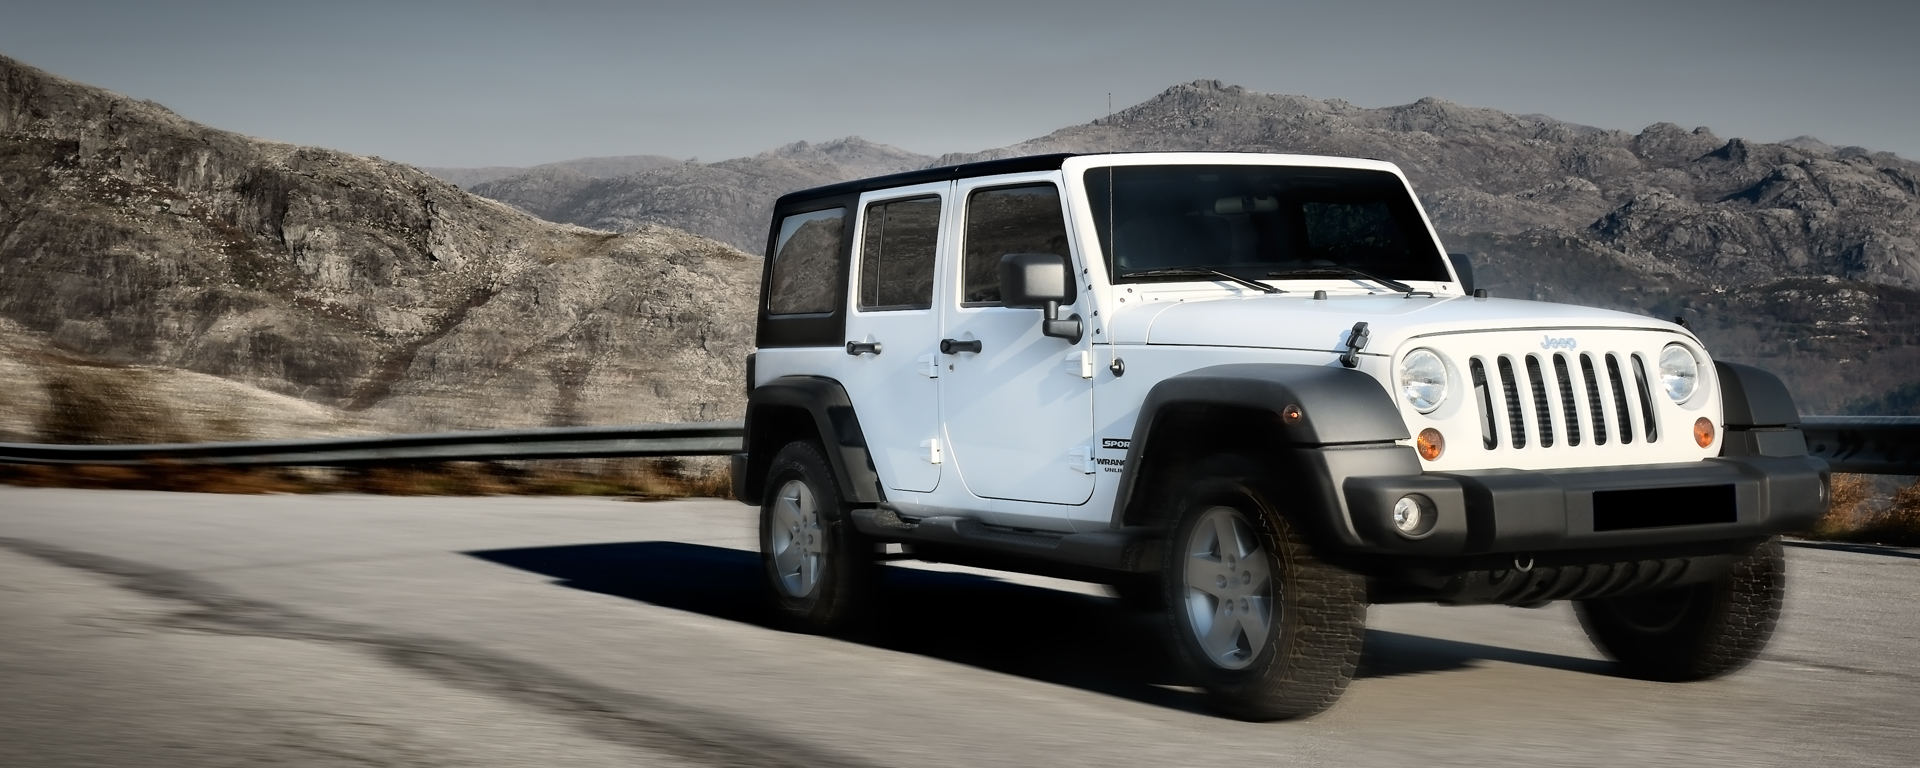 Jeep Wrangler Jk Review A Car Made For Adventure Lost Curious Fuel Filter